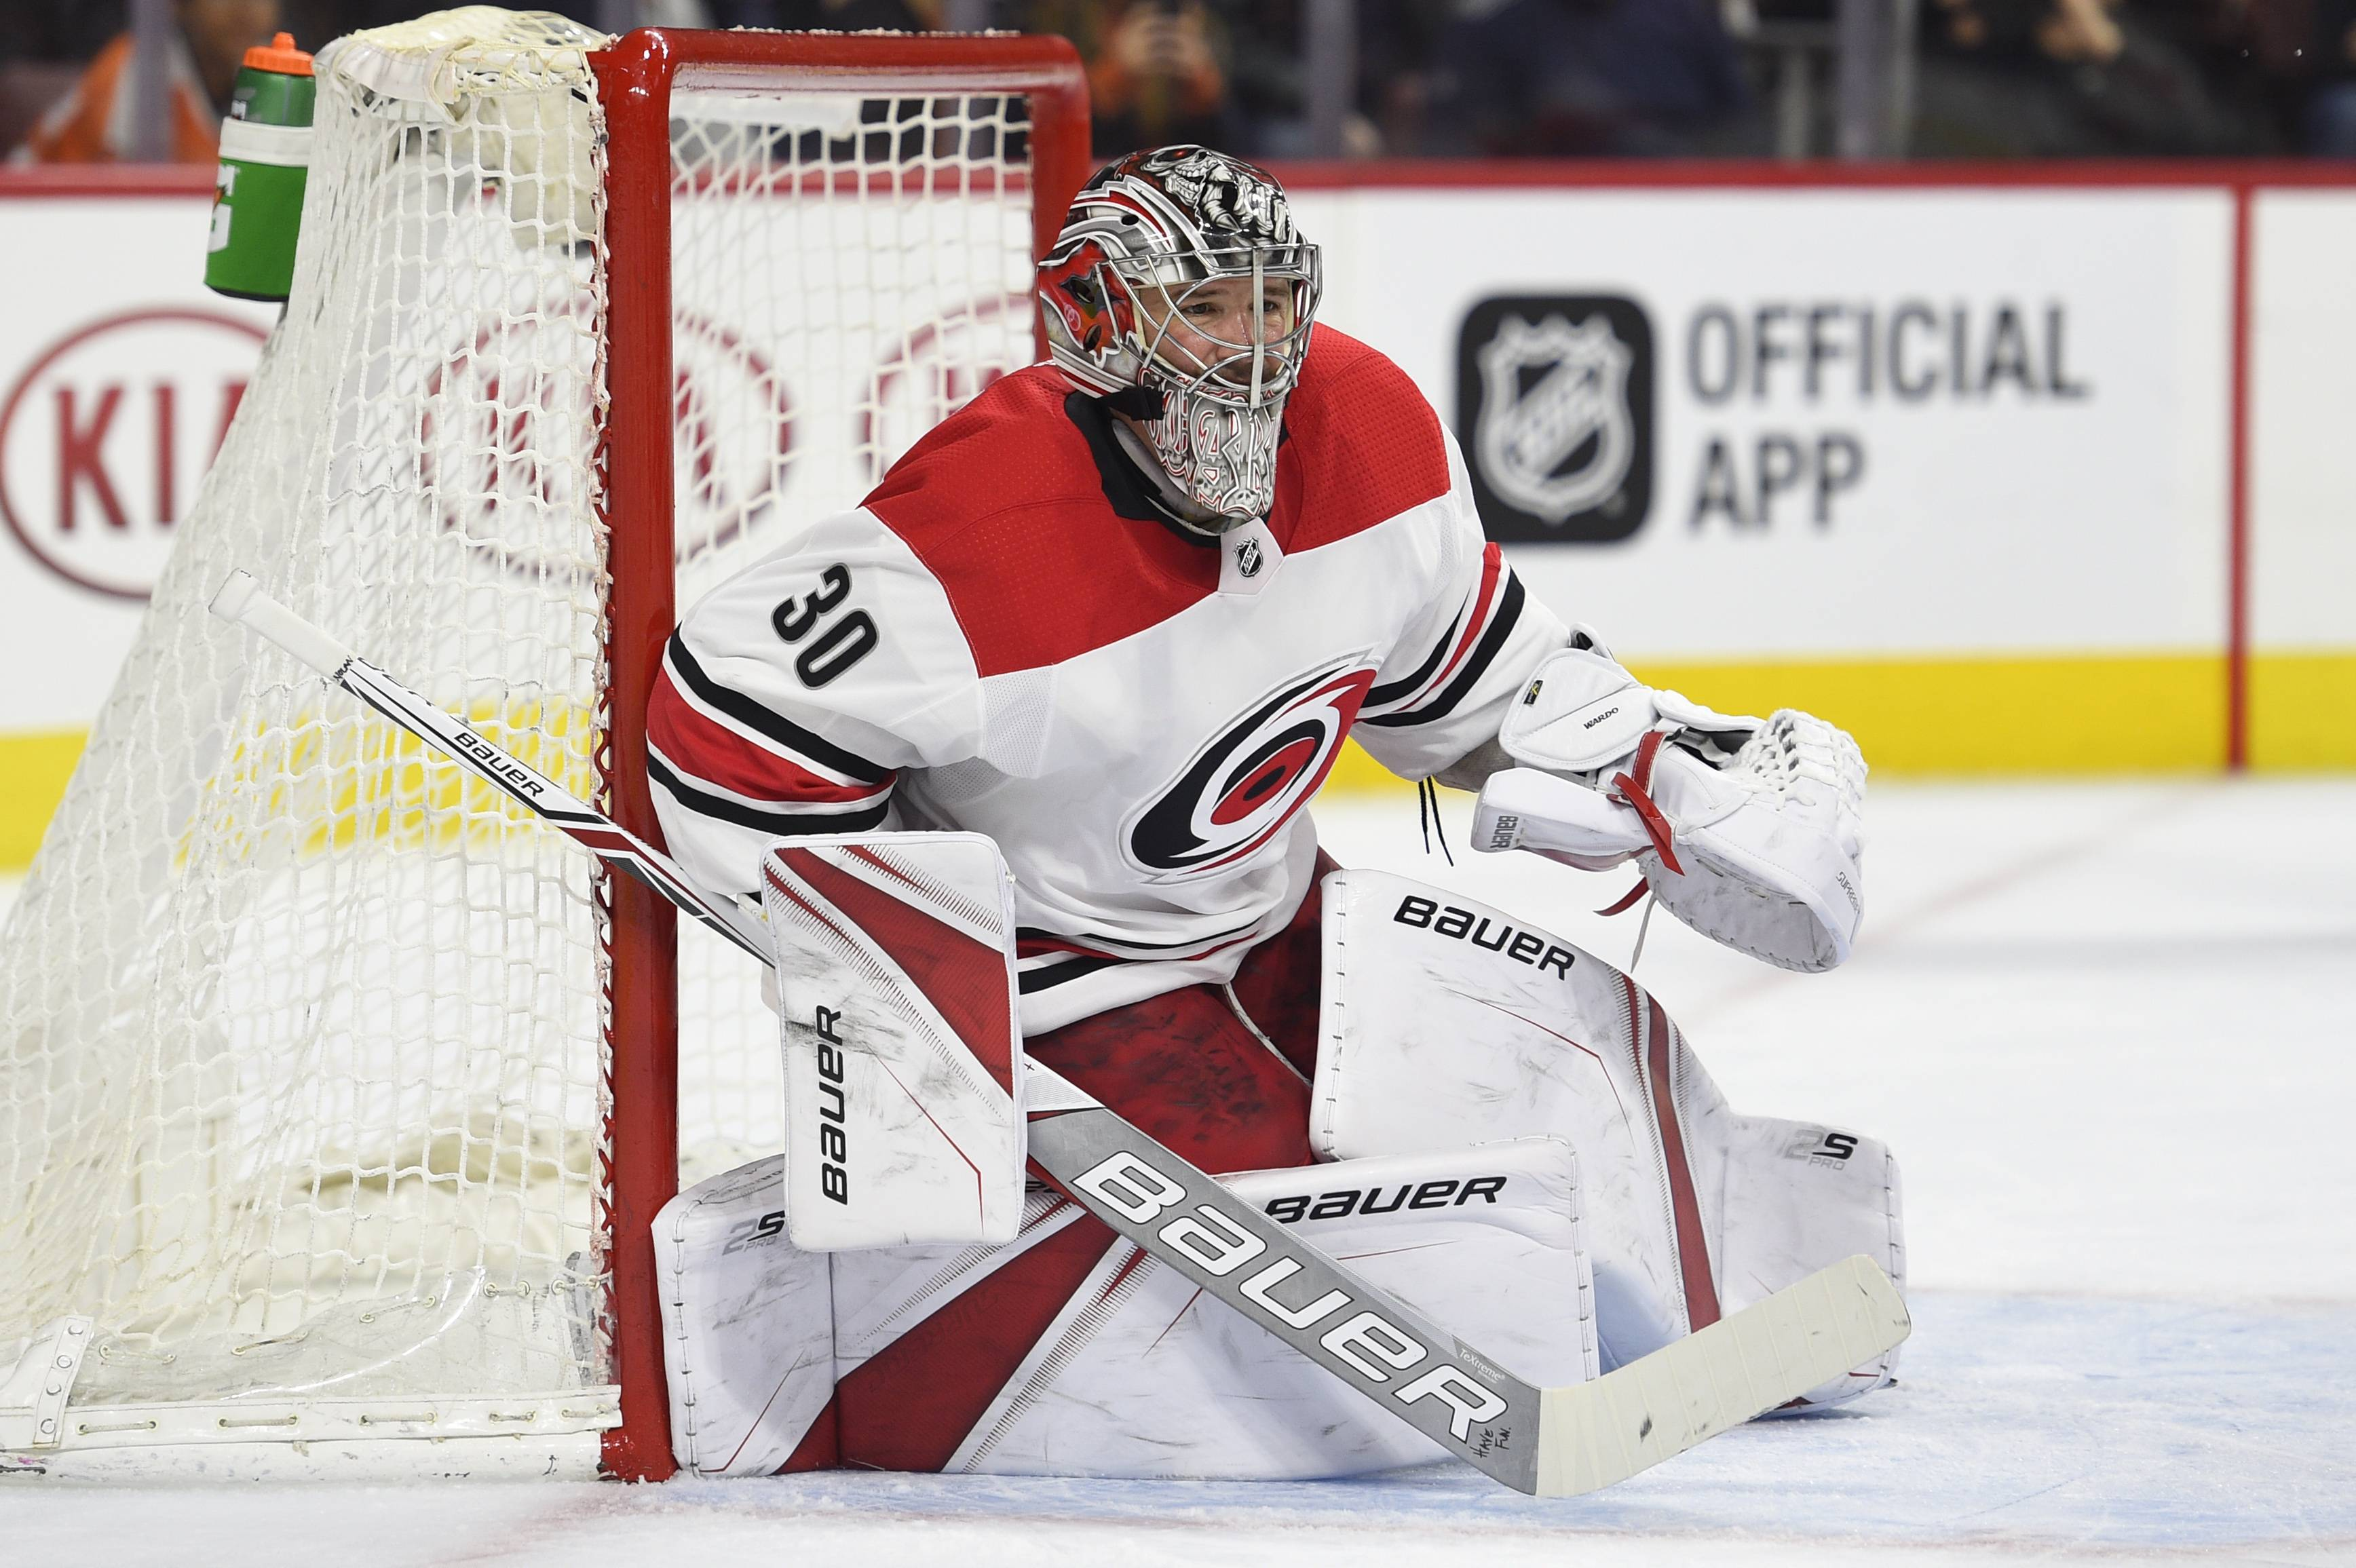 Goalie Cam Ward, who agreed to a one-year deal worth $3 million with the Chicago Blackhawks on Sunday, is expected to back up Corey Crawford next season.